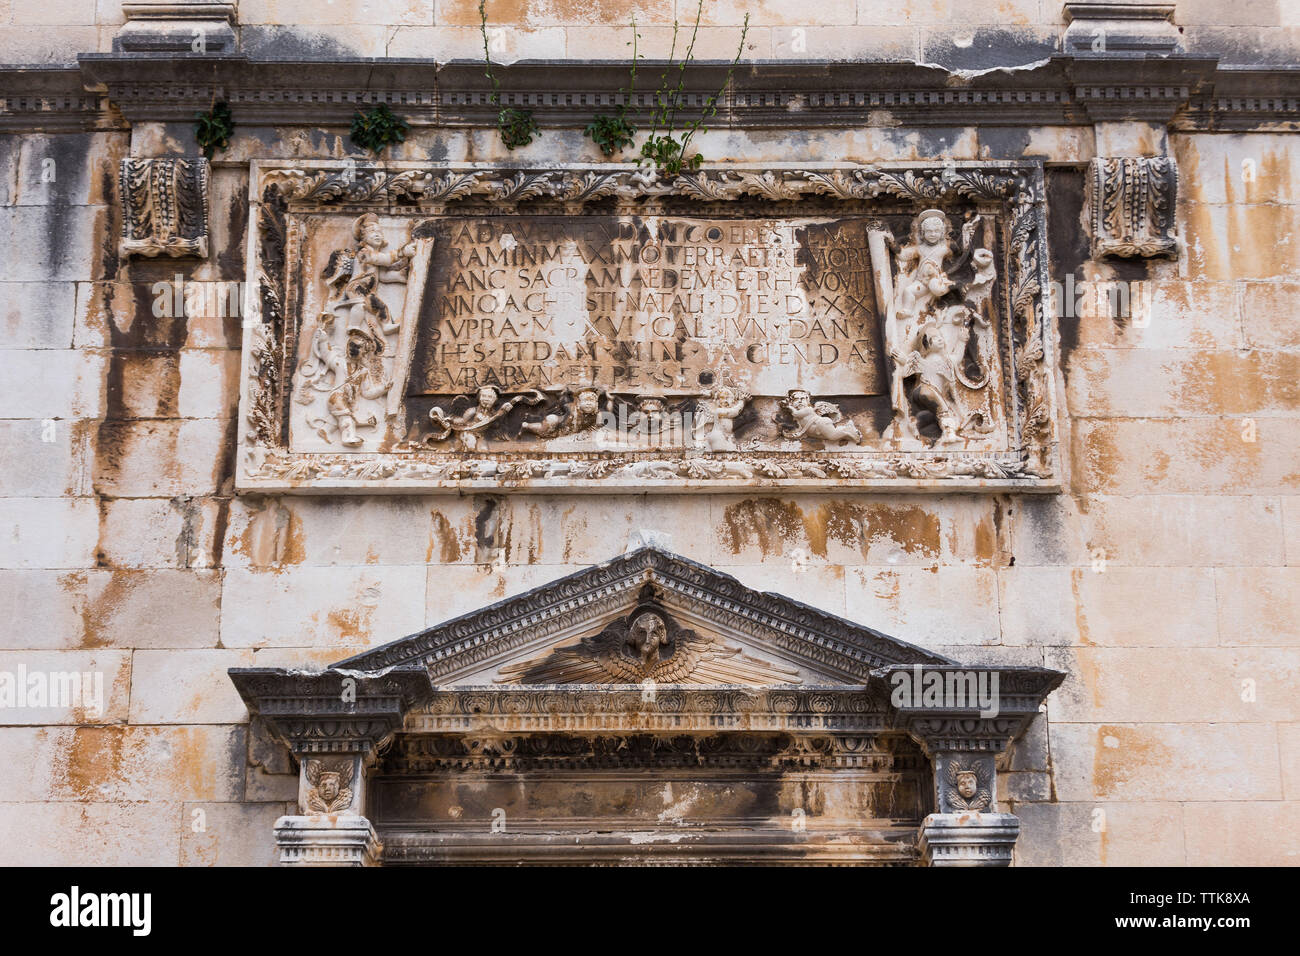 04  May 2019, Dubrovnik, Croatia. Old city architecture. Detail - Stock Image